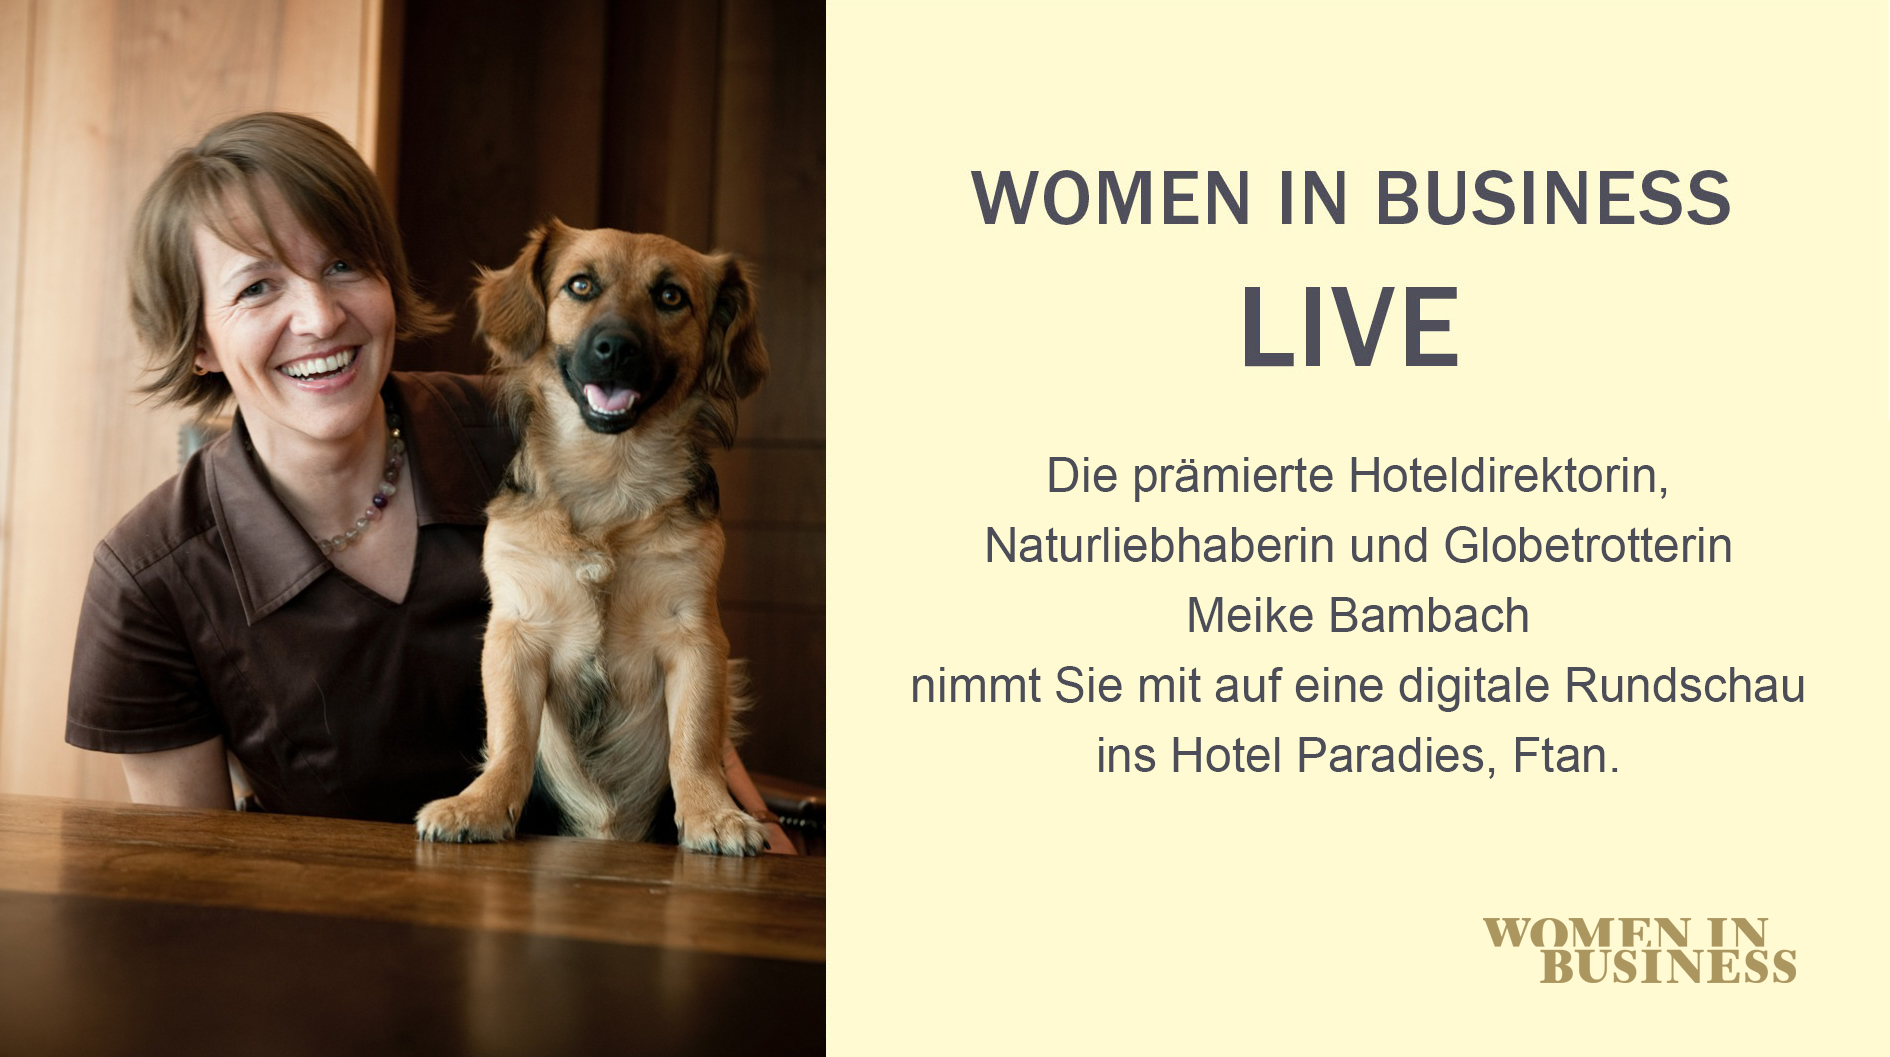 WOMEN IN BUSINESS LIVE mit Meike Bambach